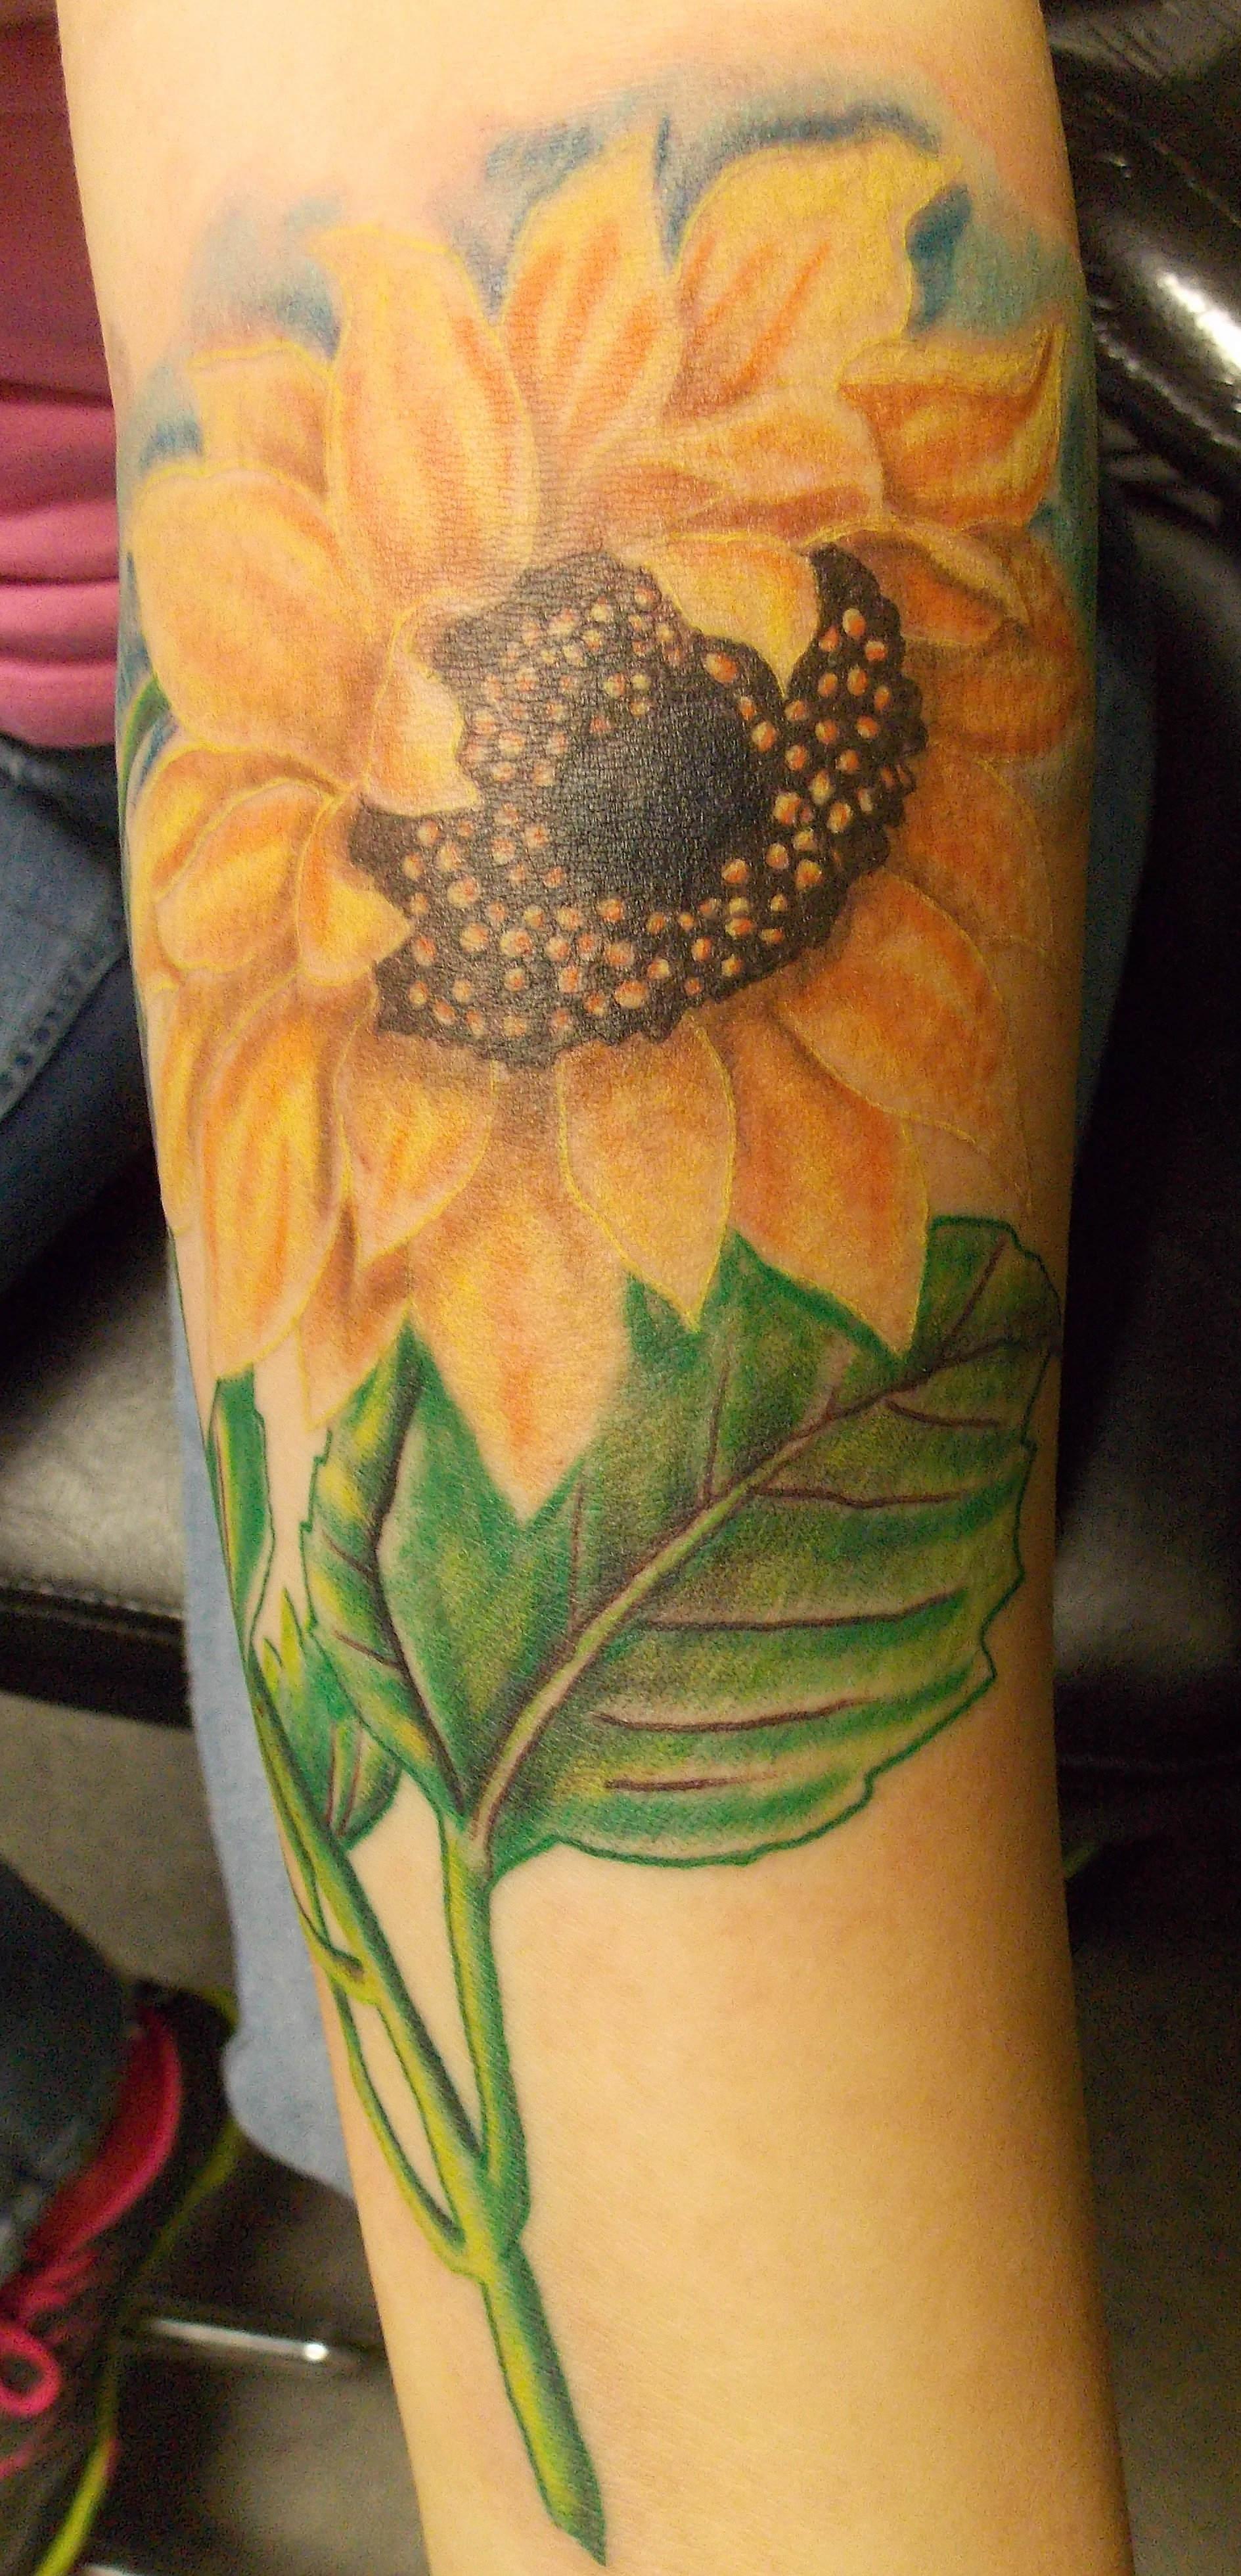 Realistic color tattoos  photo realism tattoosRealistic Sunflower Tattoo On Shoulder